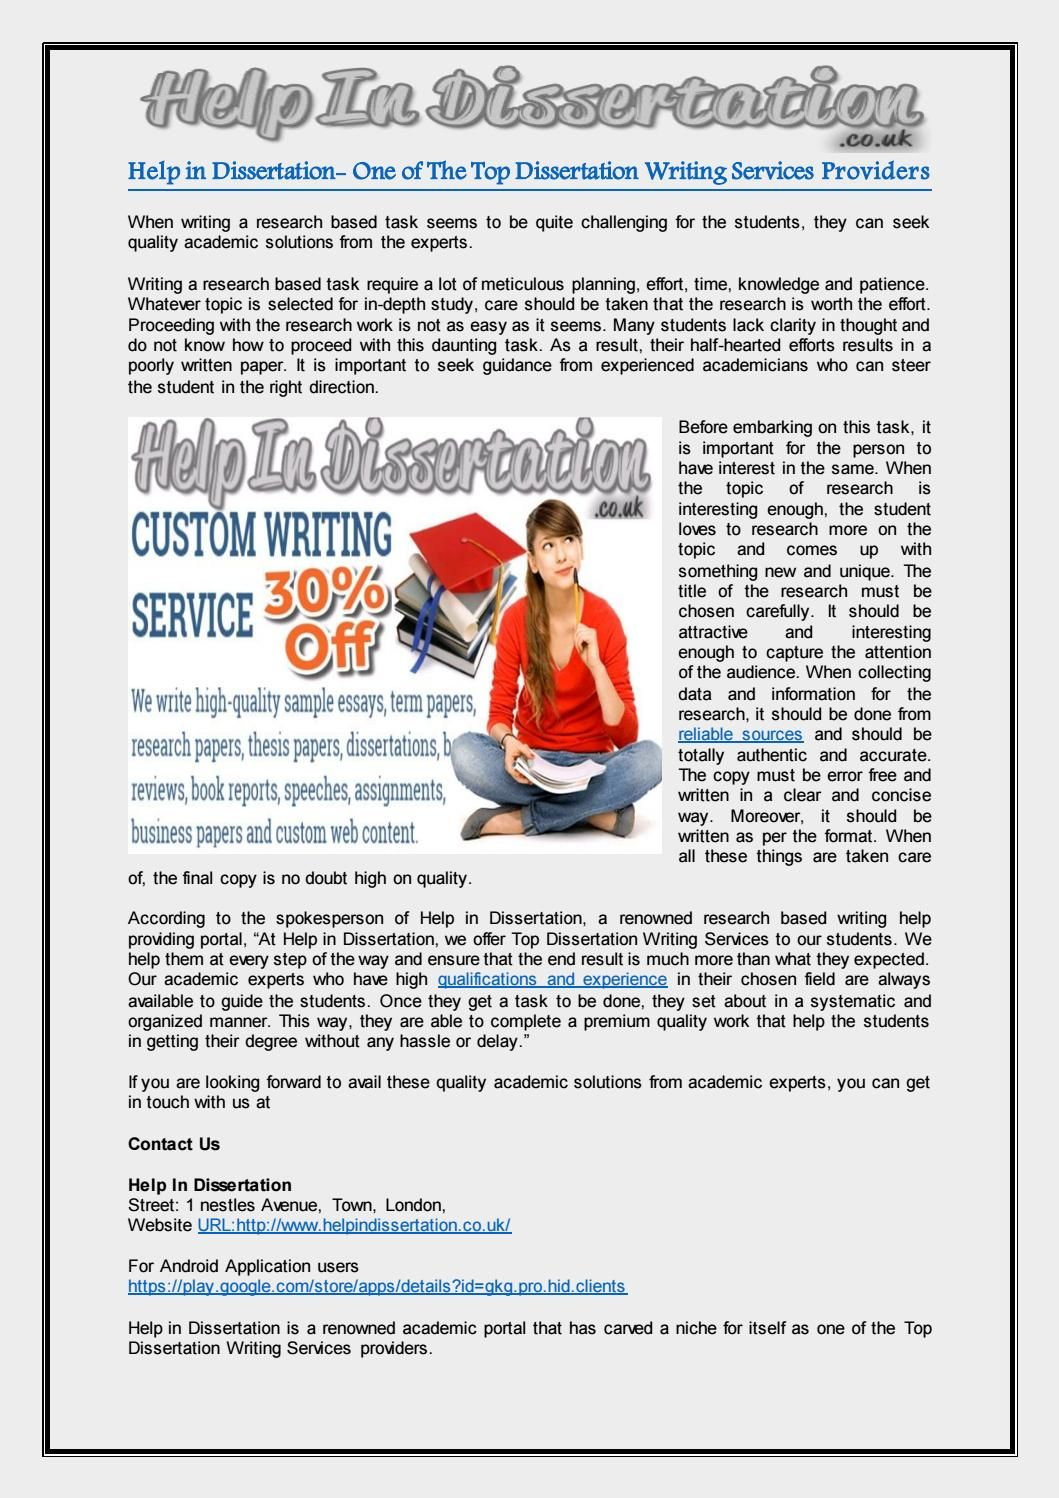 027 Research Paper Best Fearsome Websites Top Writing Full